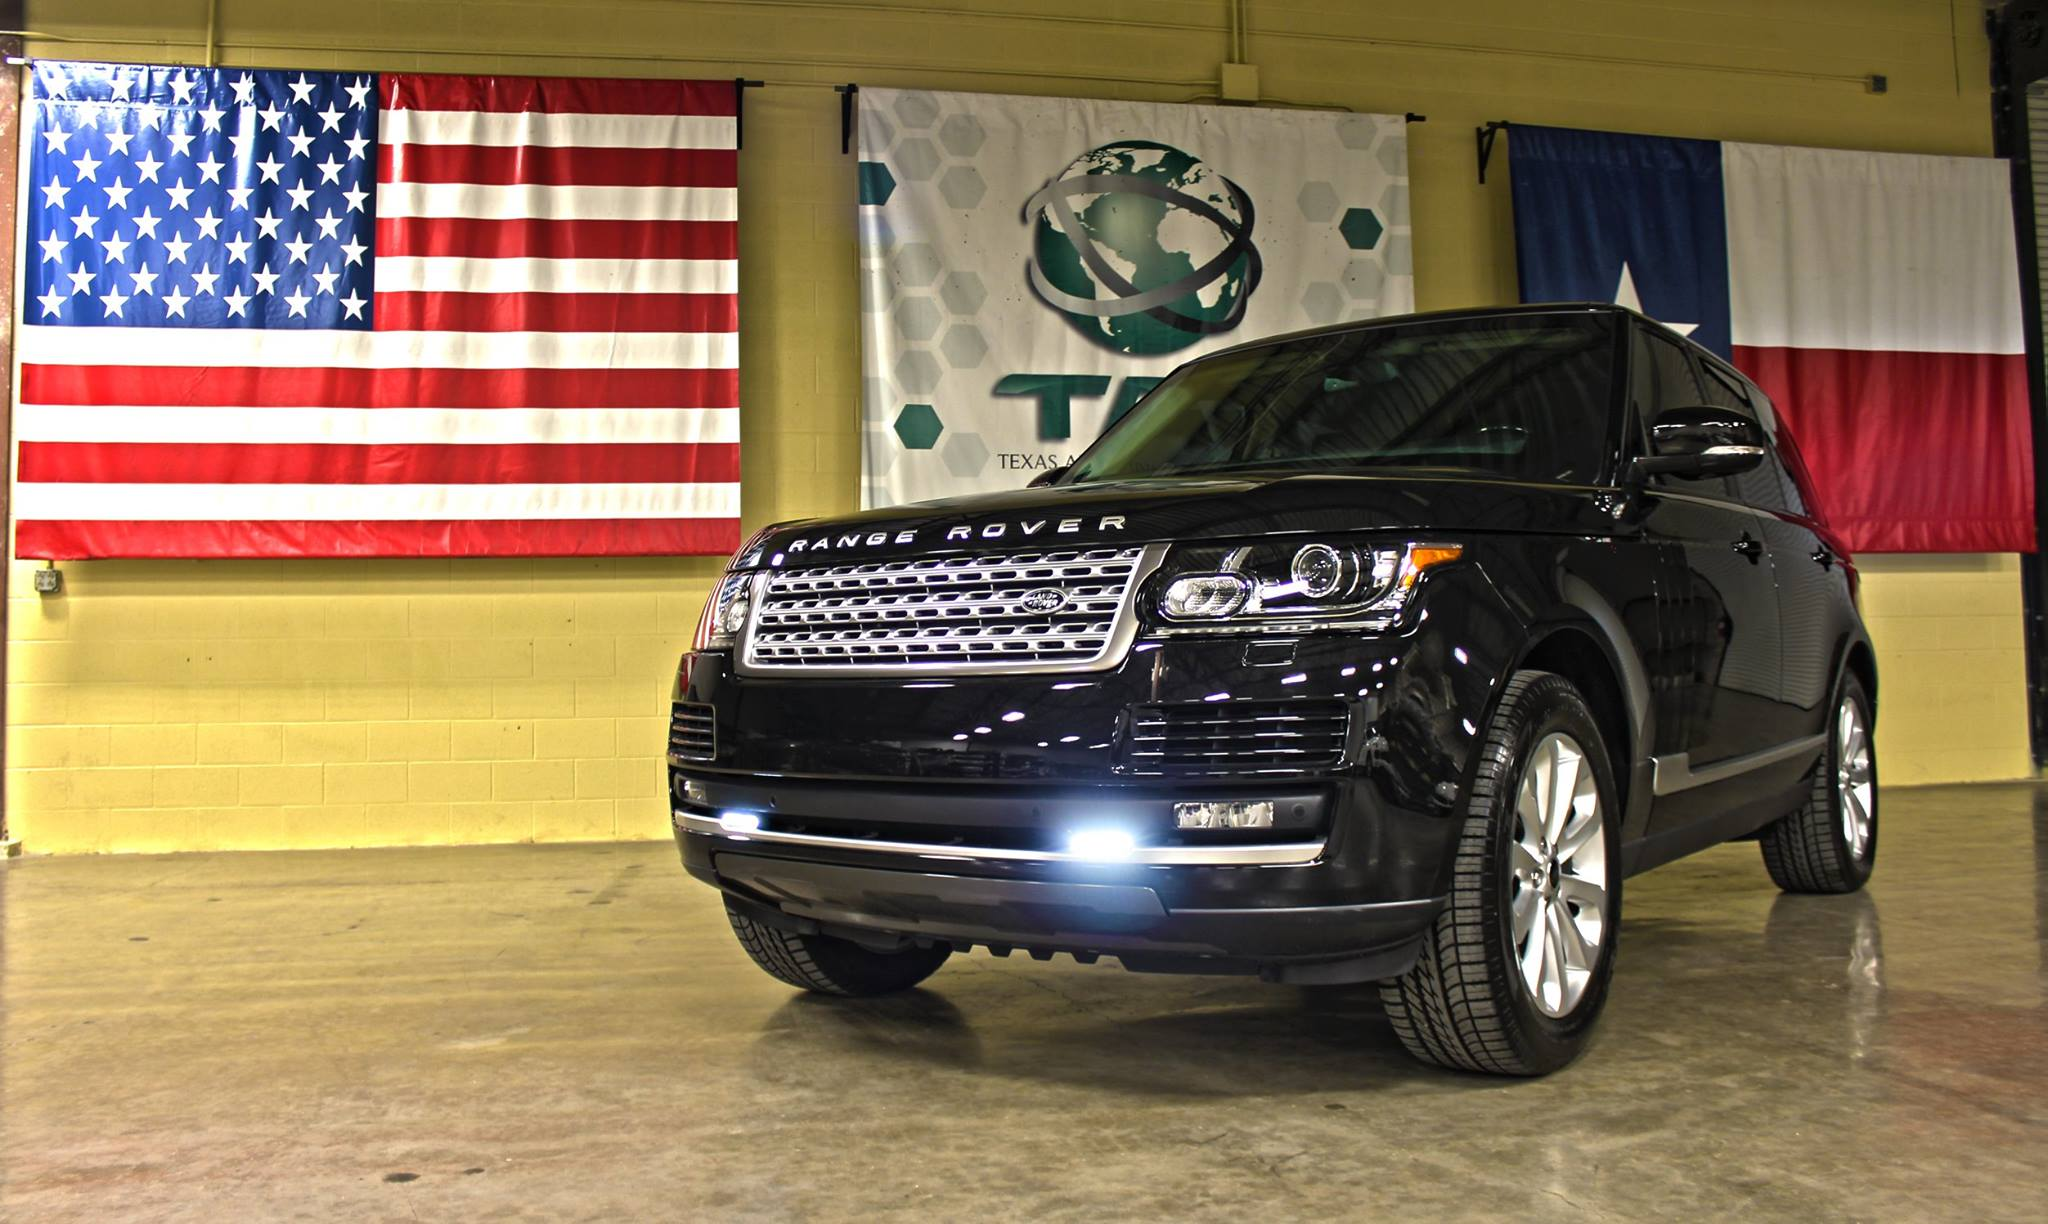 Texas_Armoring_2014_Range_Rover_Superchraged_Black